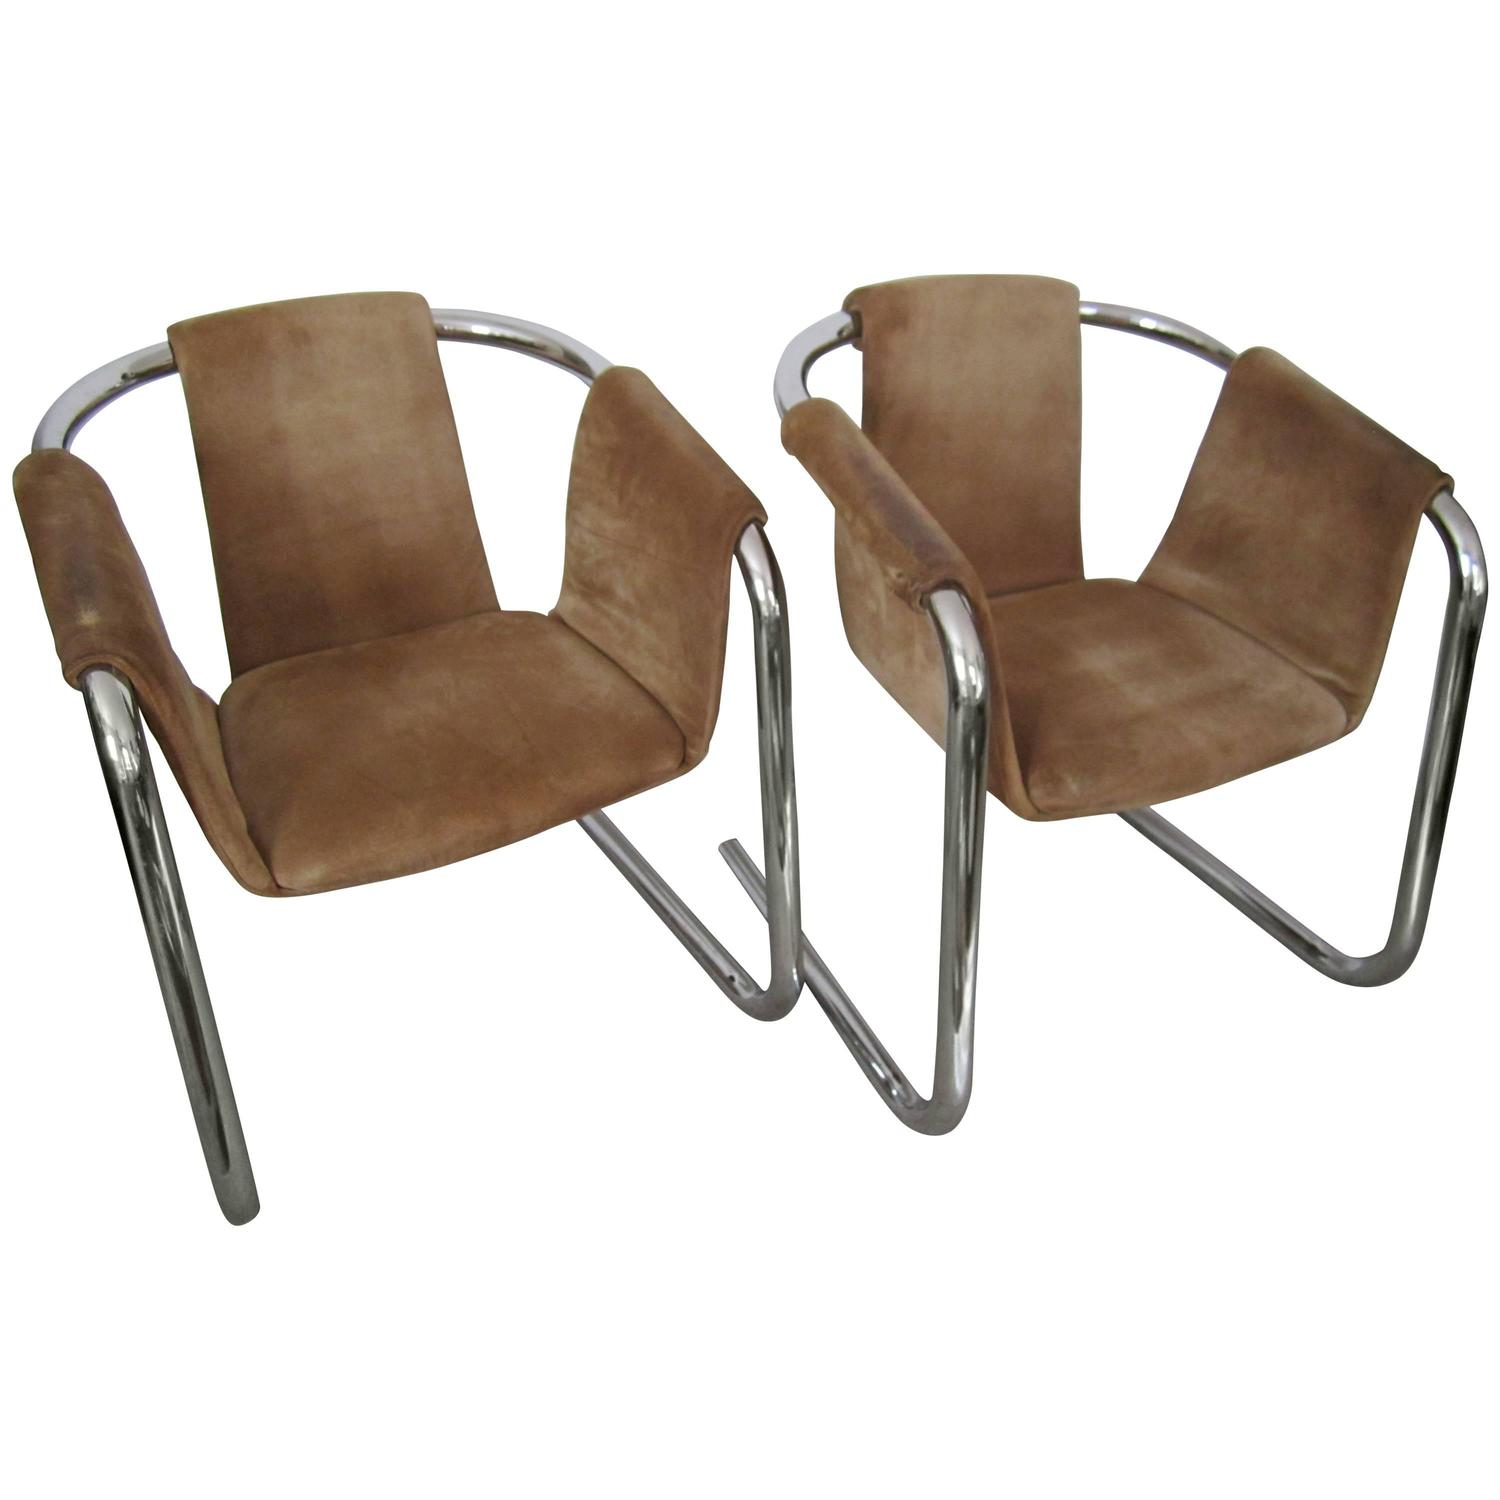 U002780s Modern Tubular Chrome Suede Sling Arm Cantilever Lounge Chairs, 1980s  For Sale At 1stdibs